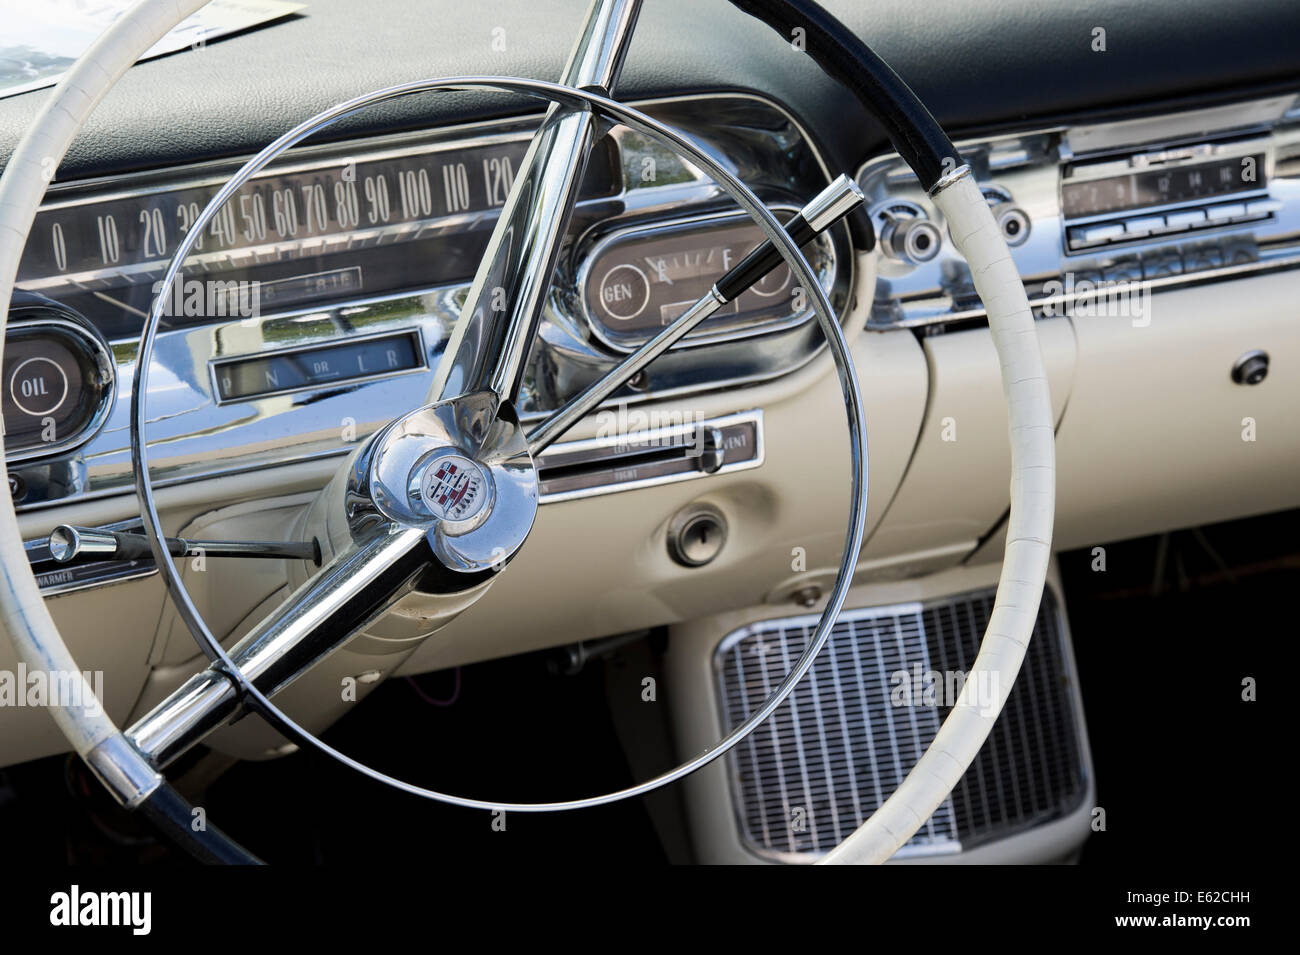 Cruise Control Kits For Old Cars